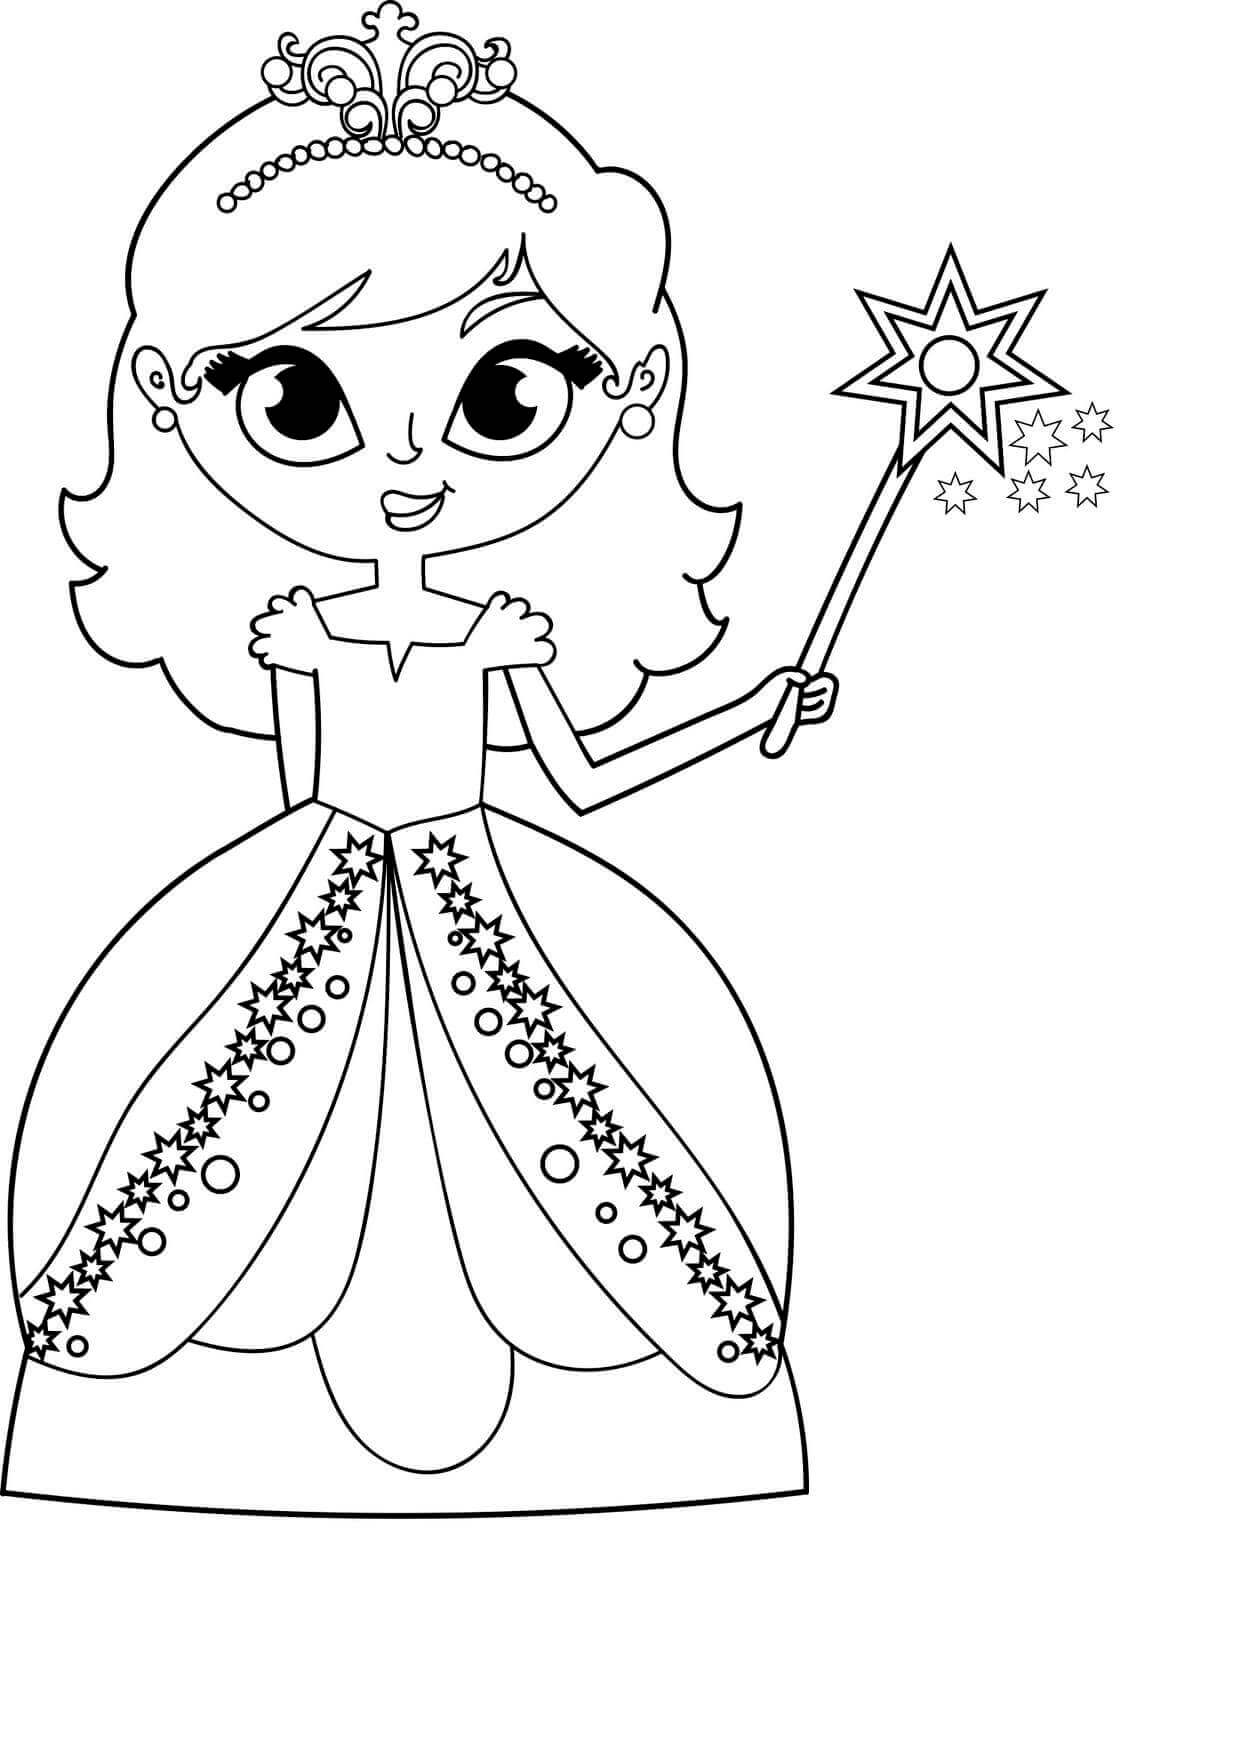 printable colouring pages for girls coloring pages for girls best coloring pages for kids printable pages for colouring girls